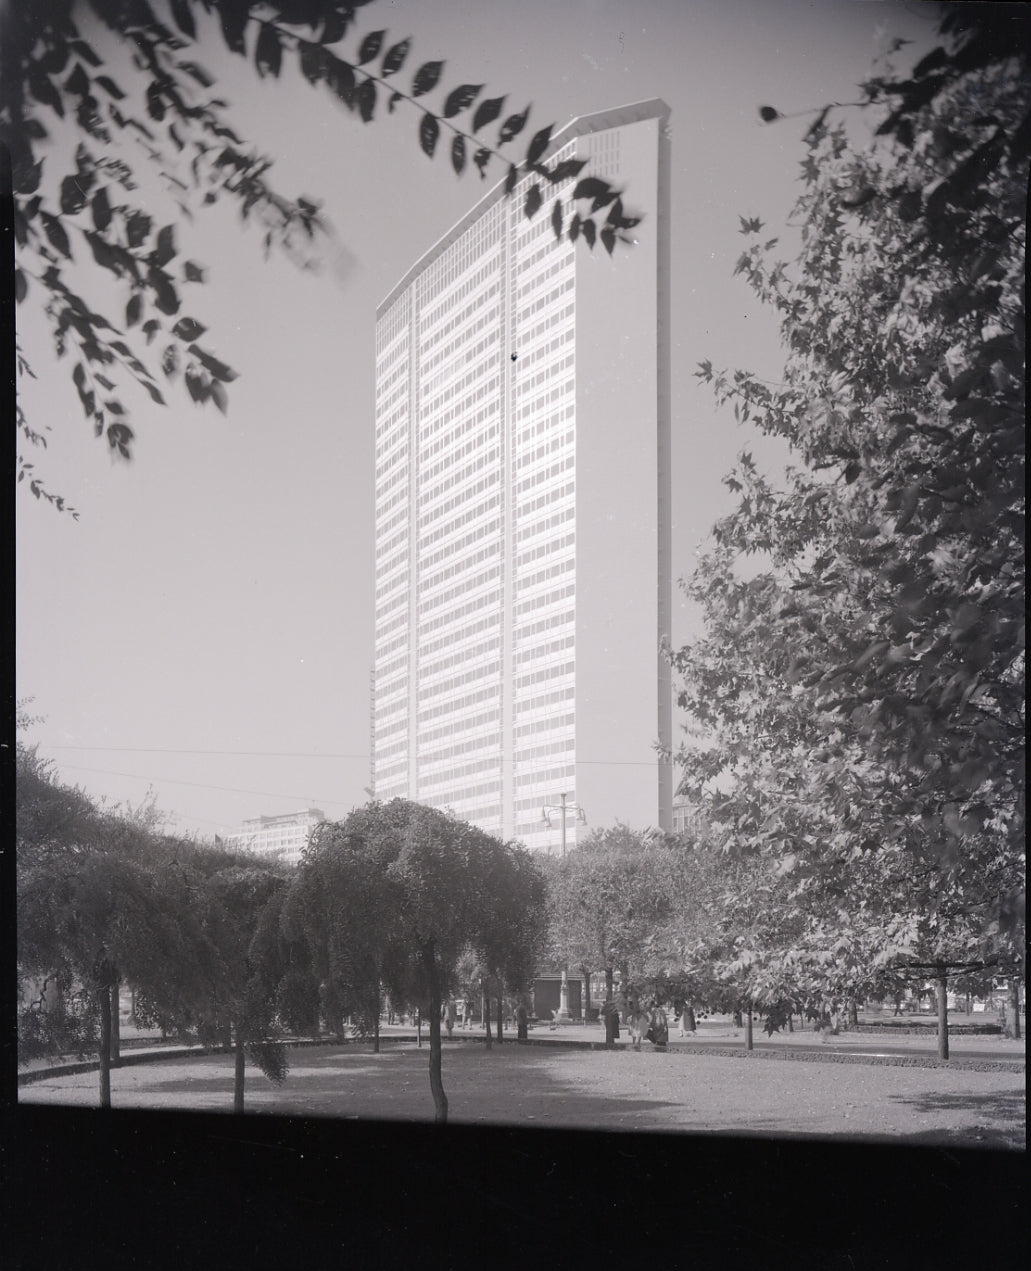 Gio Ponti black and white image of Pirelli Tower in The Eclectic Life and Work of Gio Ponti for A Collected Man London